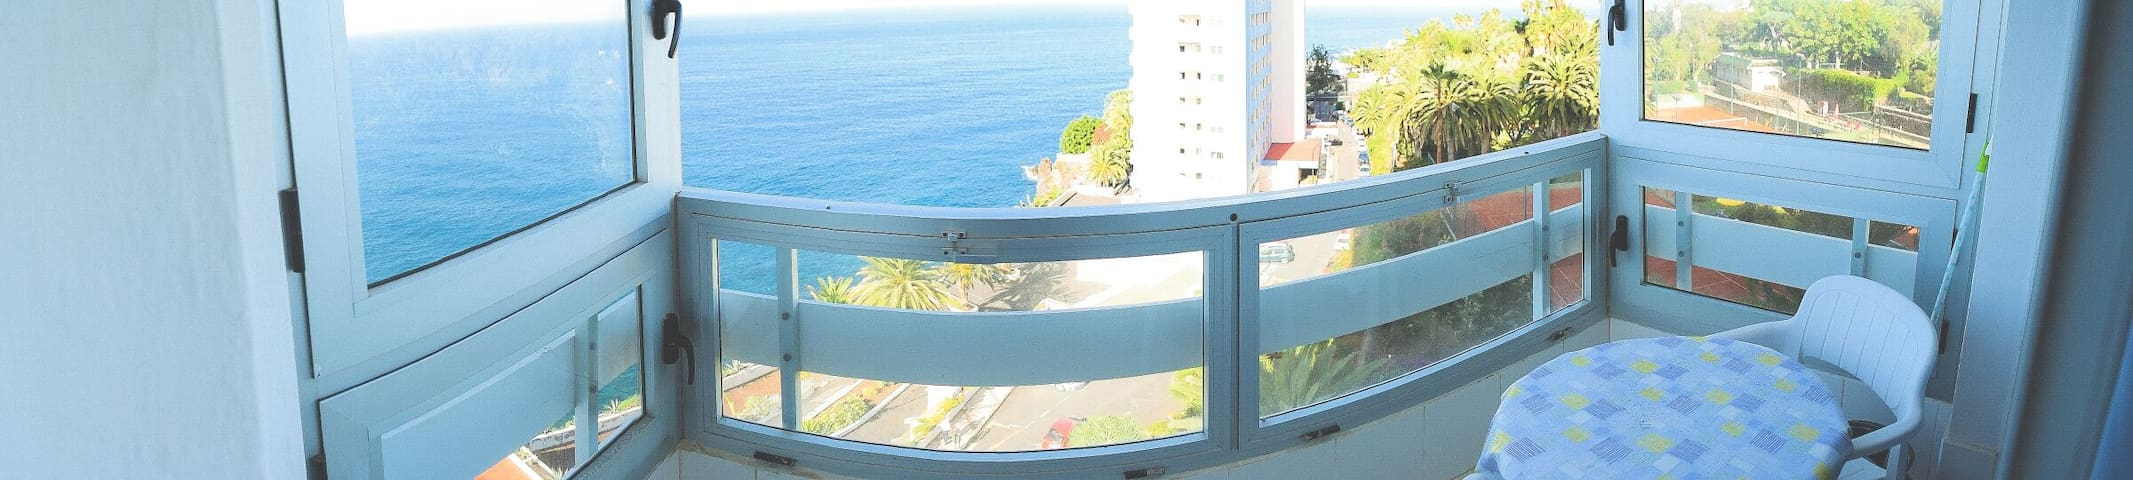 ★ Amazing Ocean View Apartment ★ - Puerto de la Cruz - Apartemen